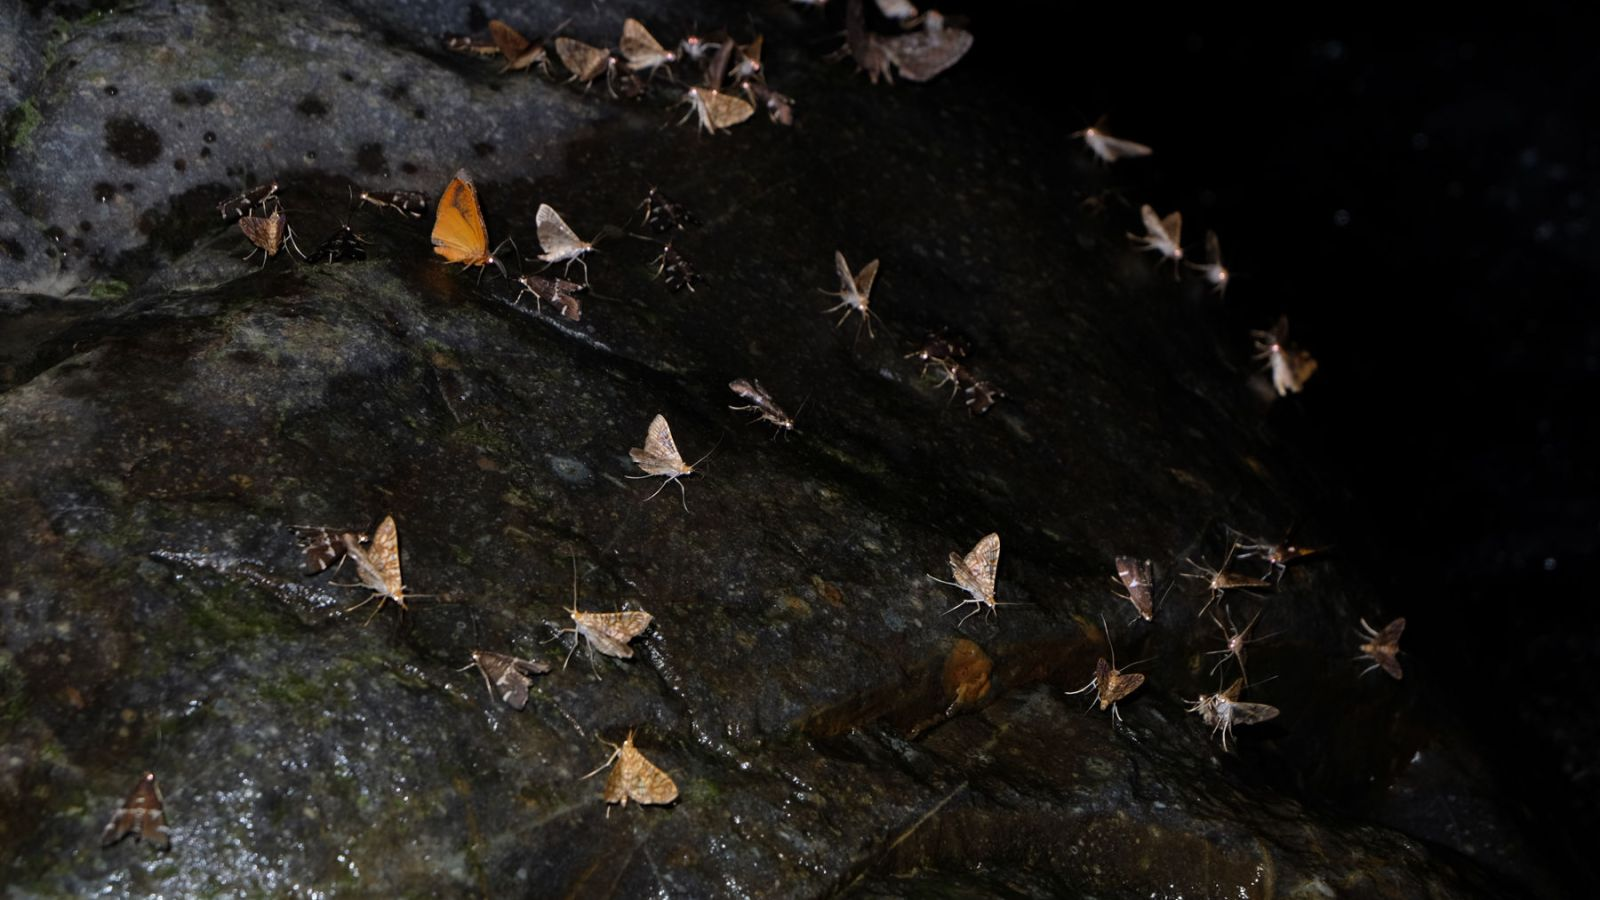 a photo of moths gathering on a rock at night in gunung leuser national park